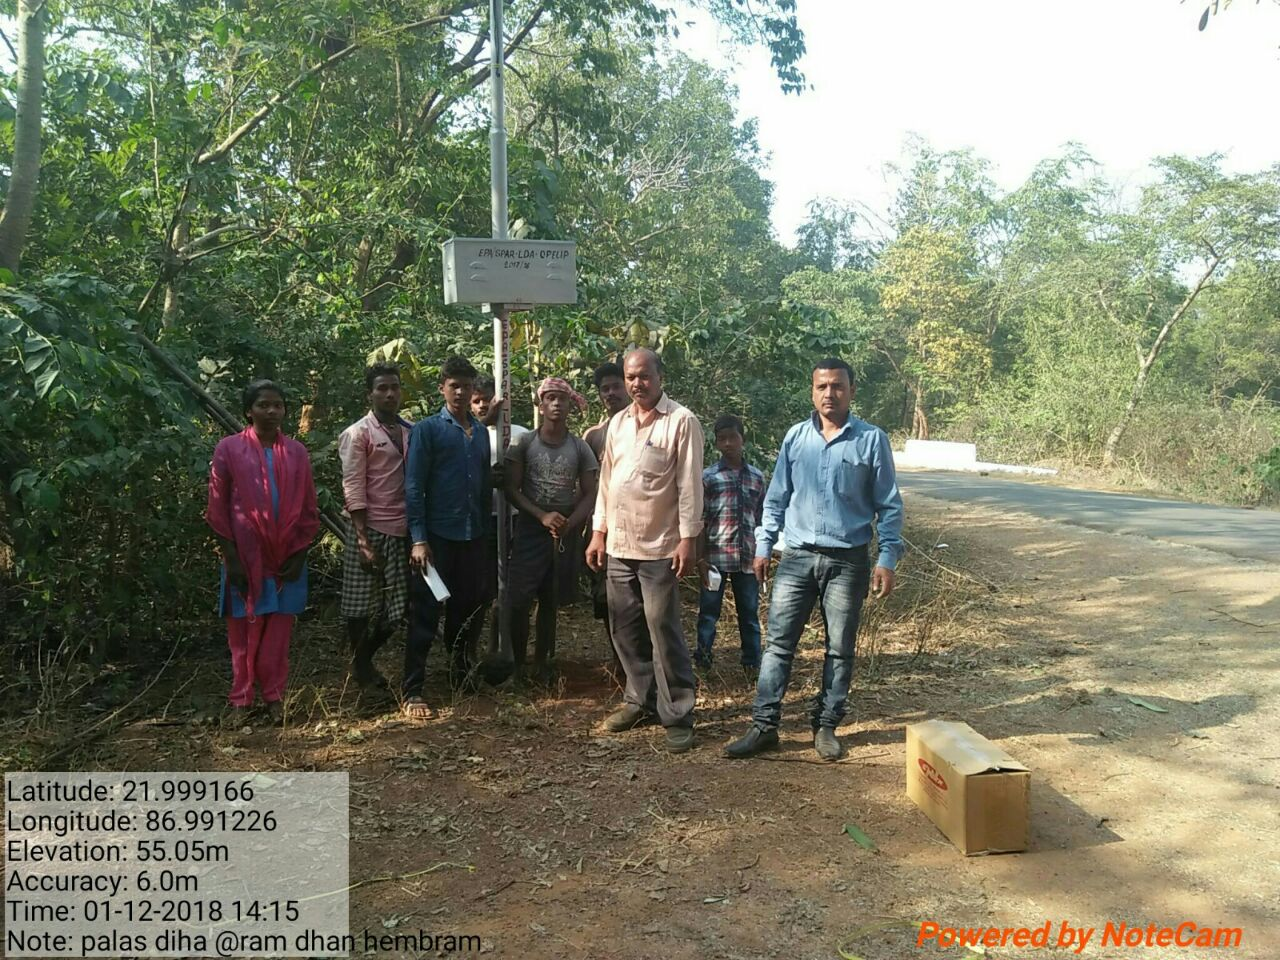 Bindu Kumar of Urjaa Samadhan, 3rd from right (cream shirt), with residents of a village in Mayurbhanj. A streetlight battery shown just above head-height.